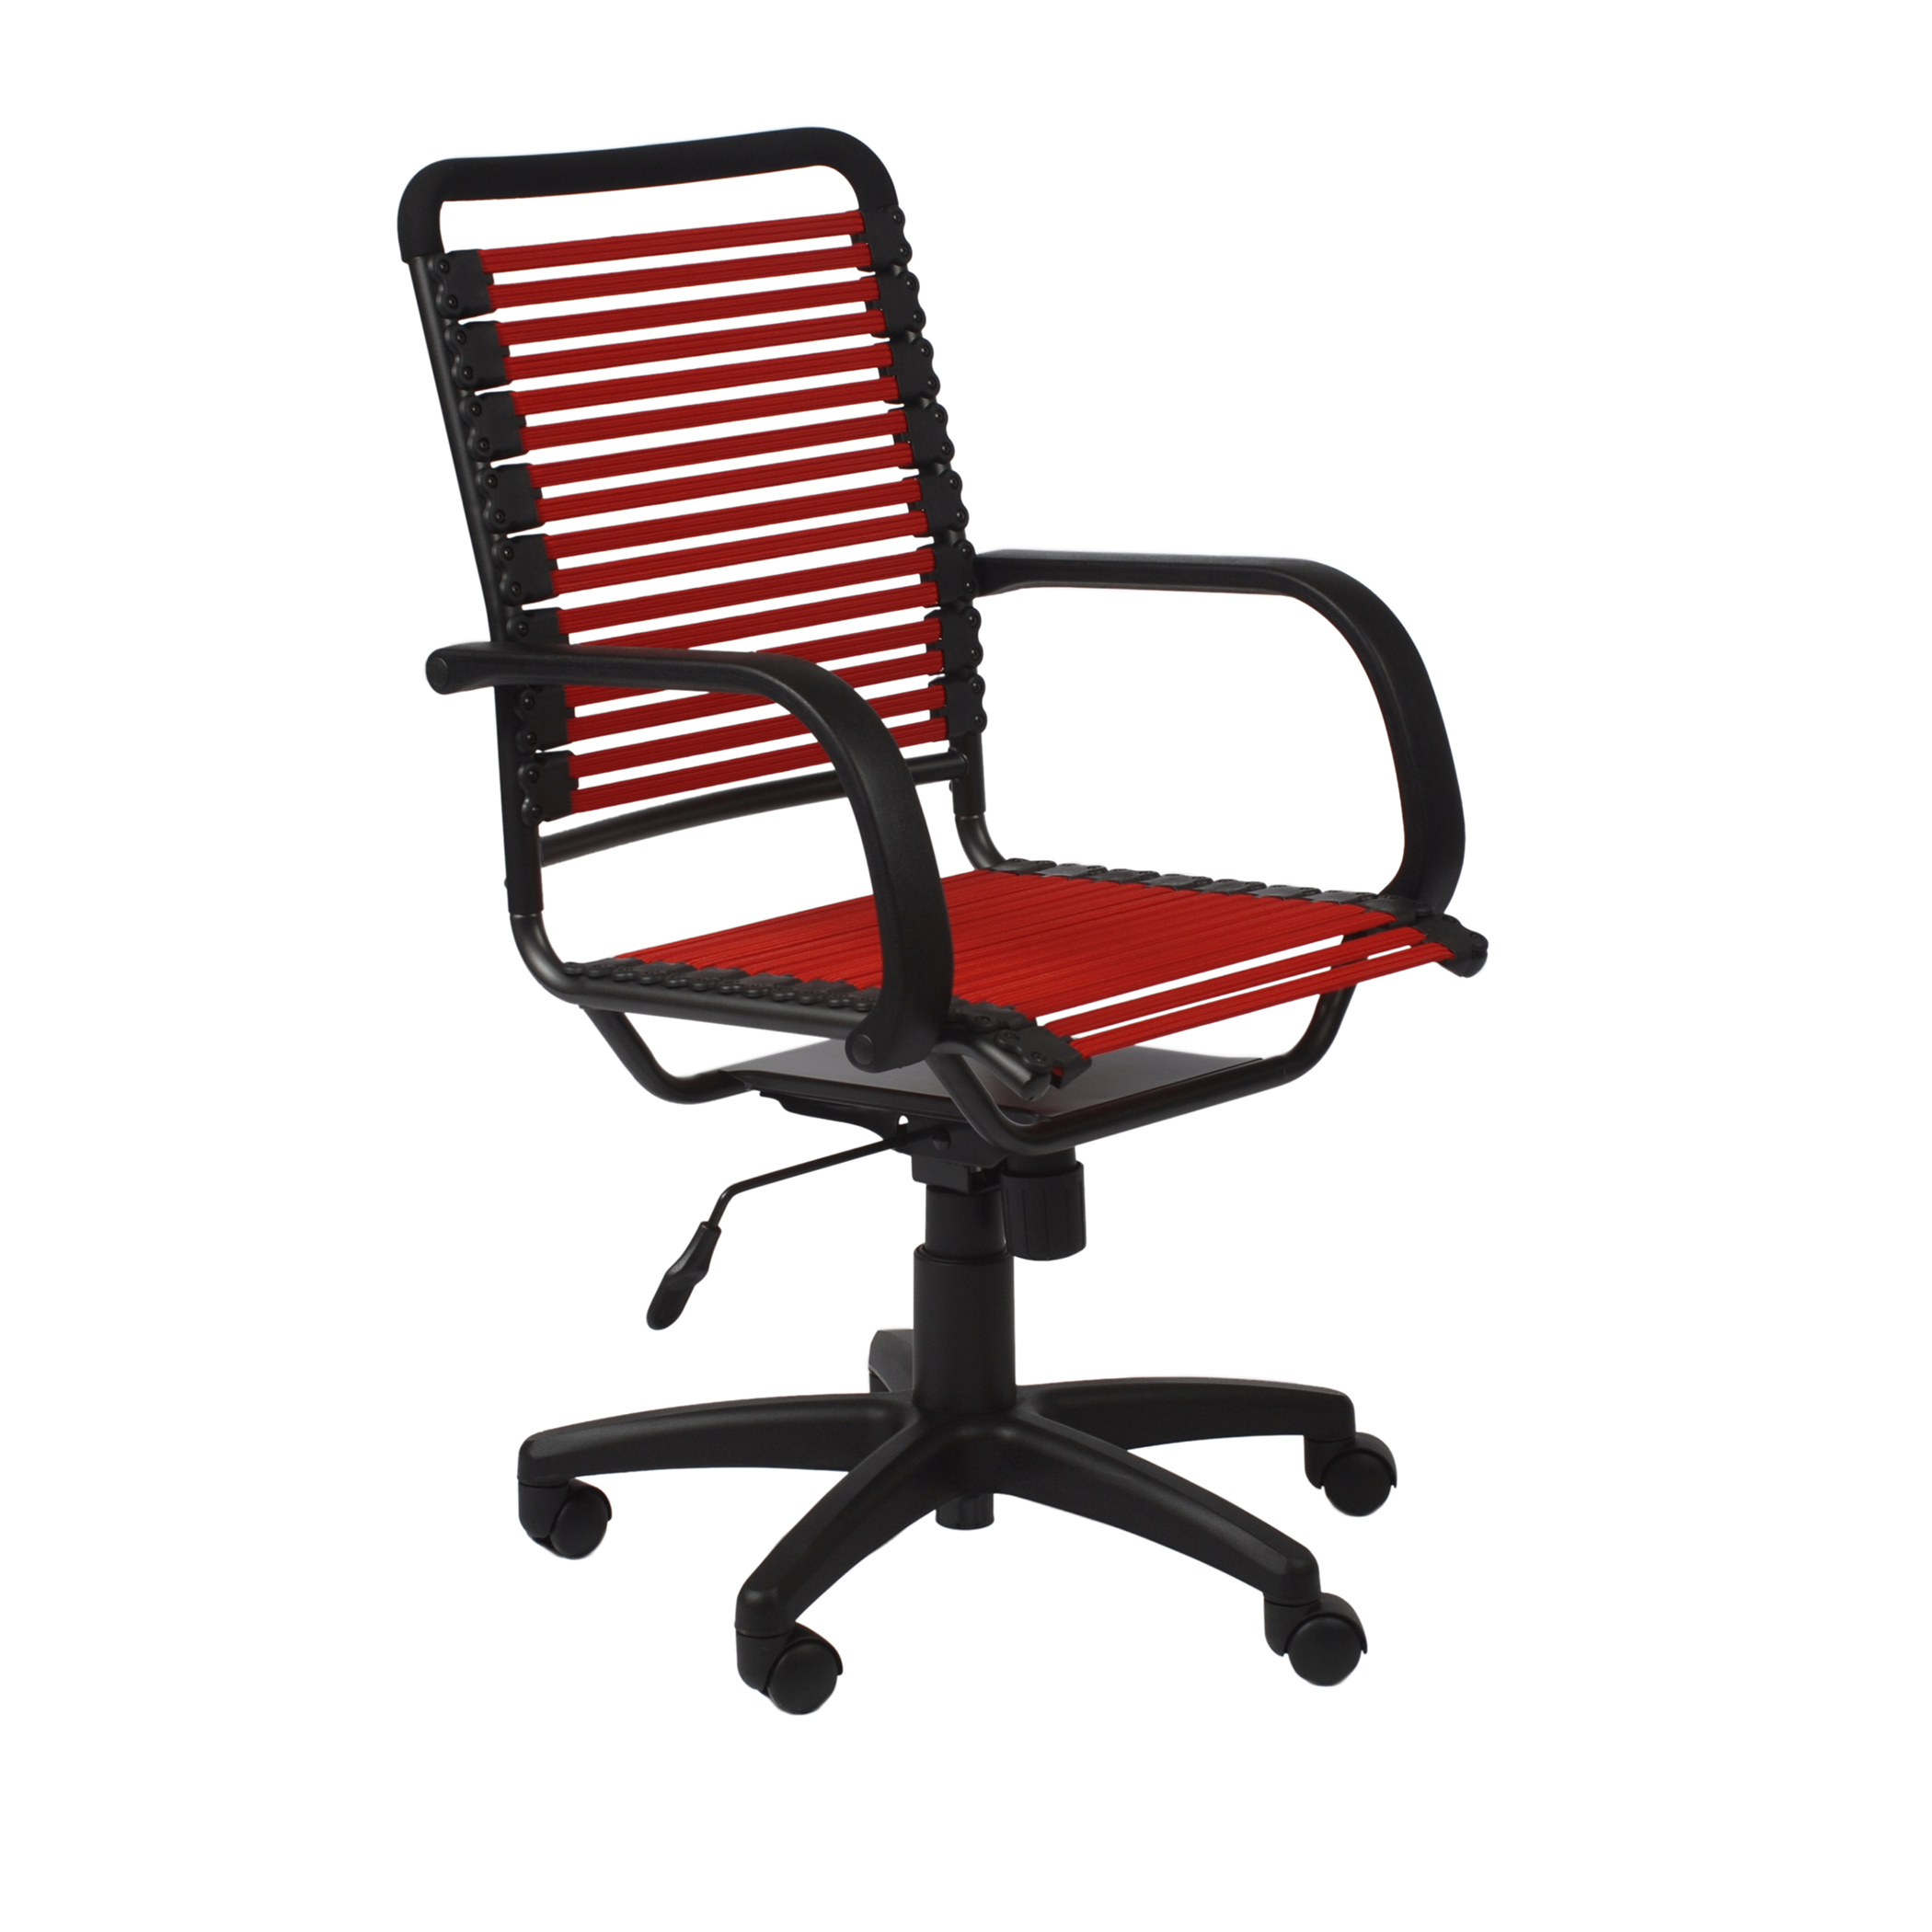 Bungie Flat High Back fice Chair Euro Style